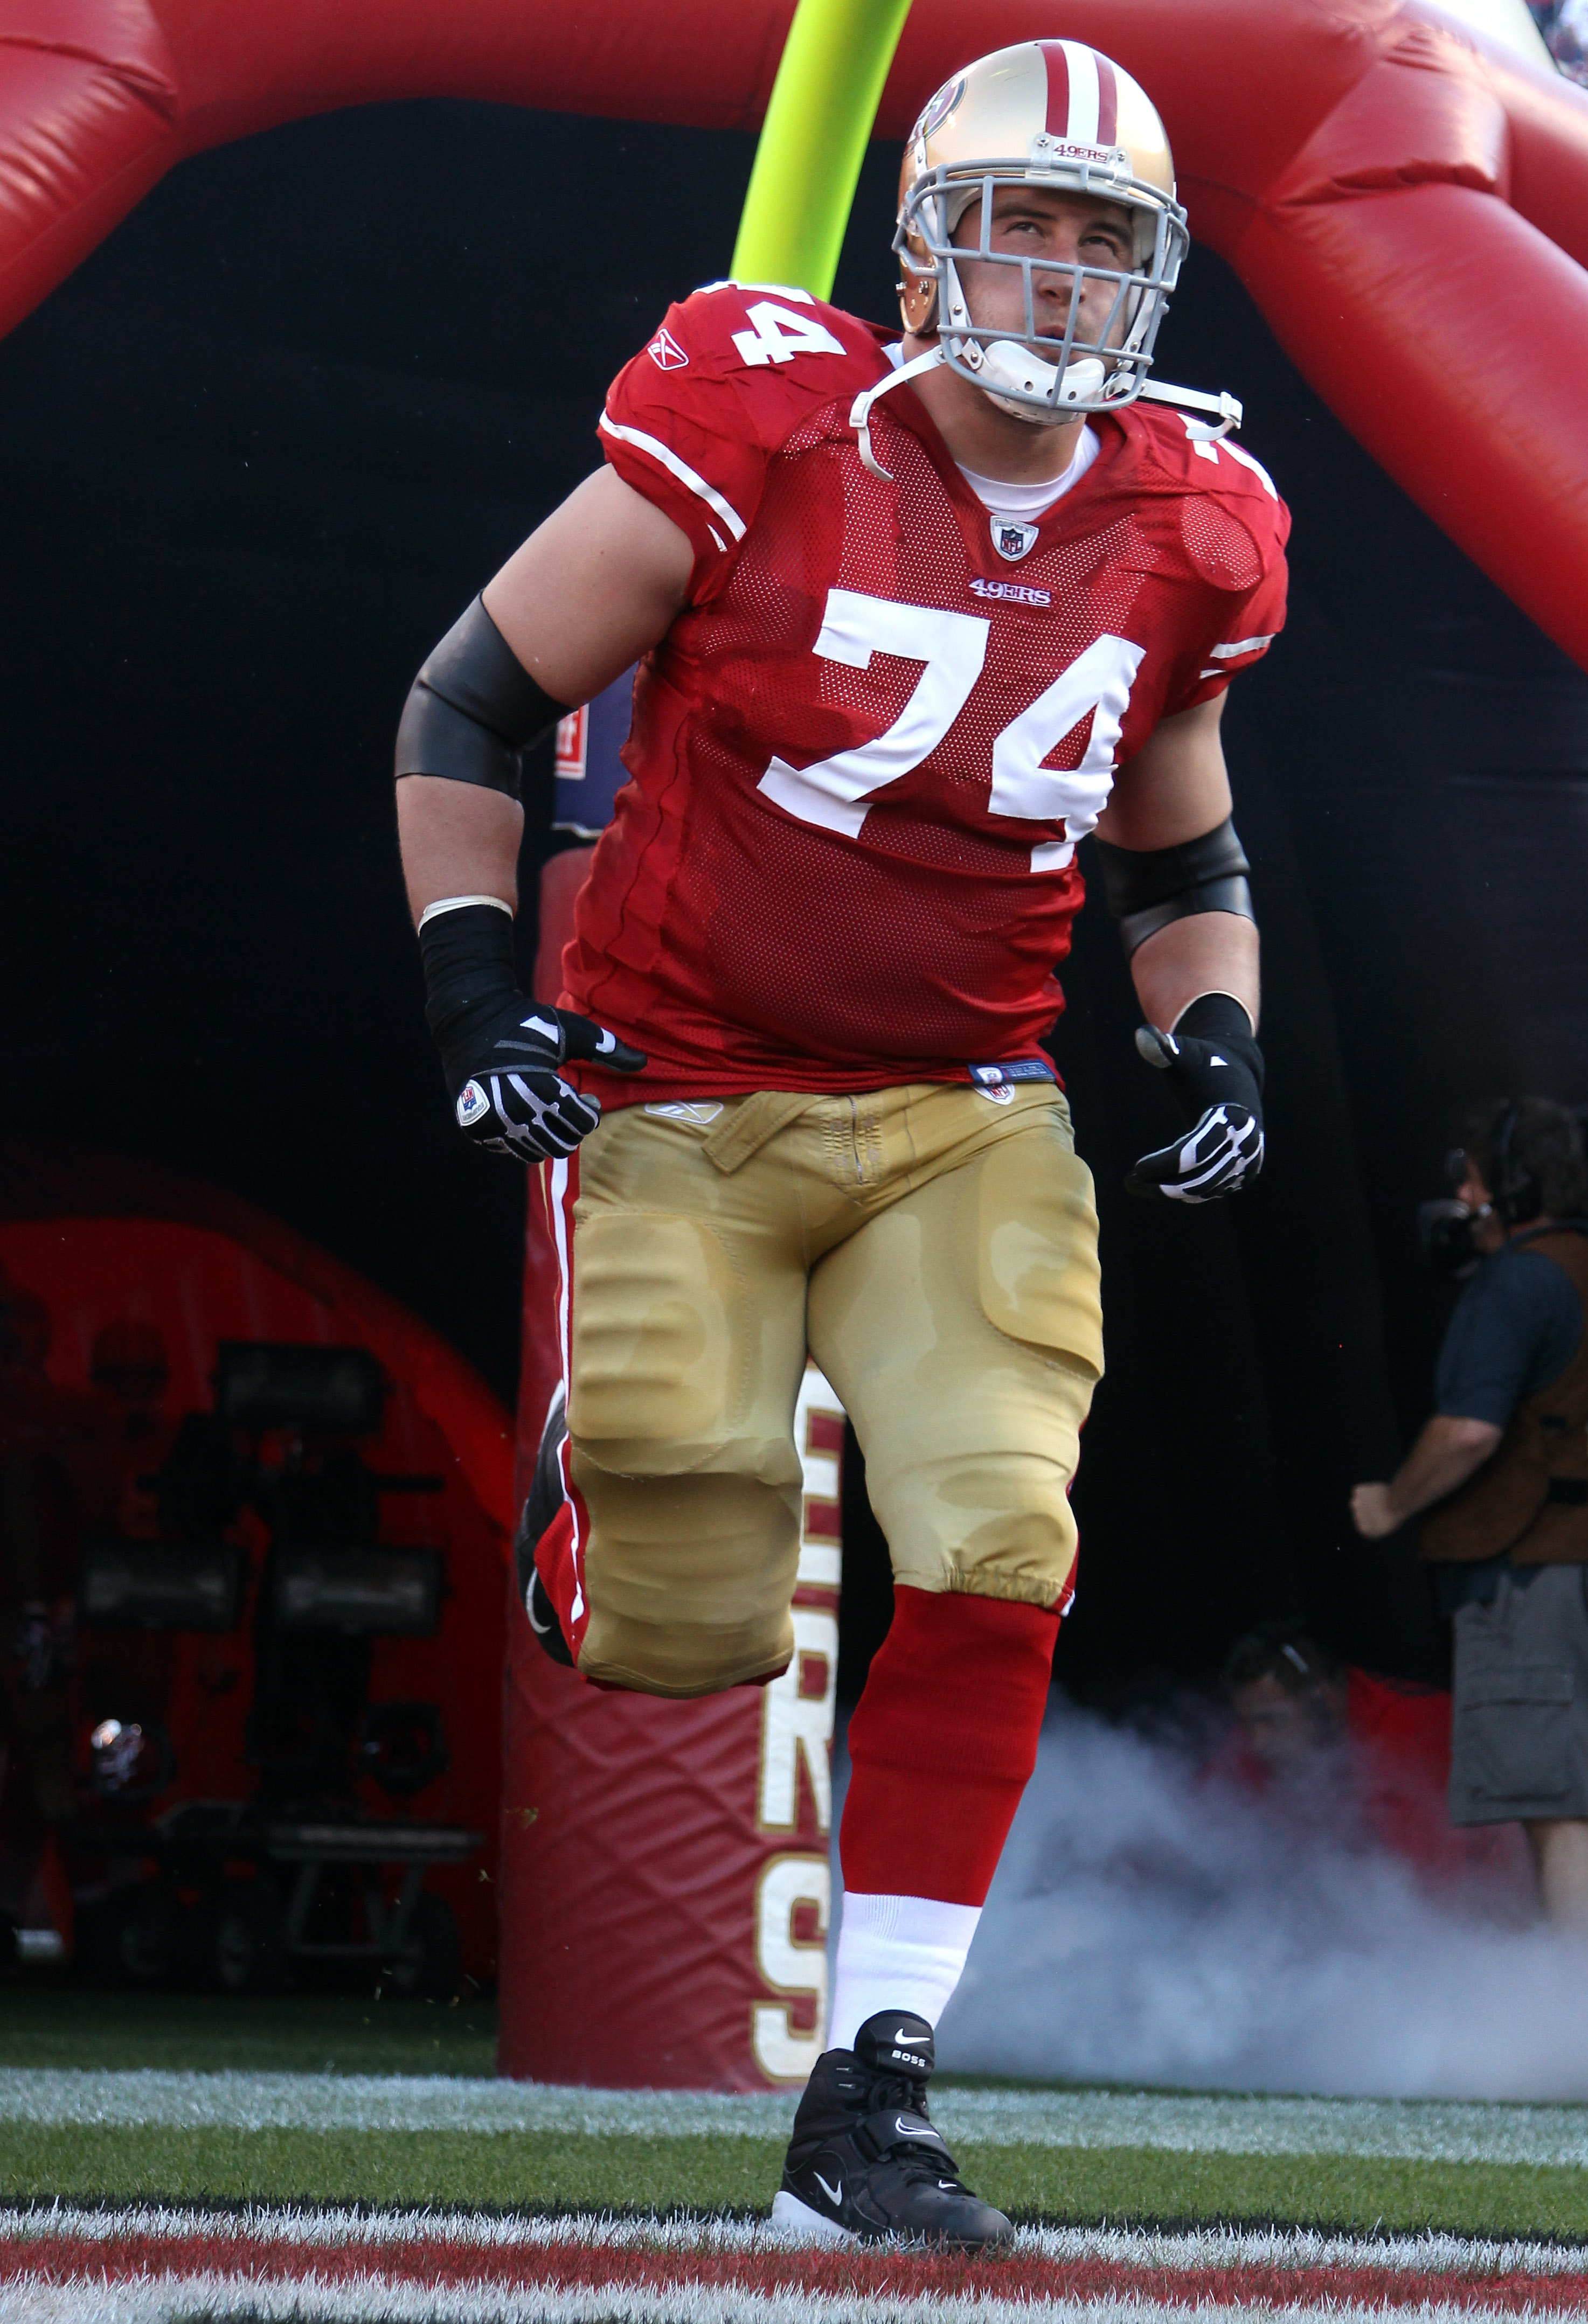 SAN FRANCISCO - SEPTEMBER 20:  Joe Staley #74 of the San Francisco 49ers runs on to the field for their game against the New Orleans Saints at Candlestick Park on September 20, 2010 in San Francisco, California.  (Photo by Ezra Shaw/Getty Images)